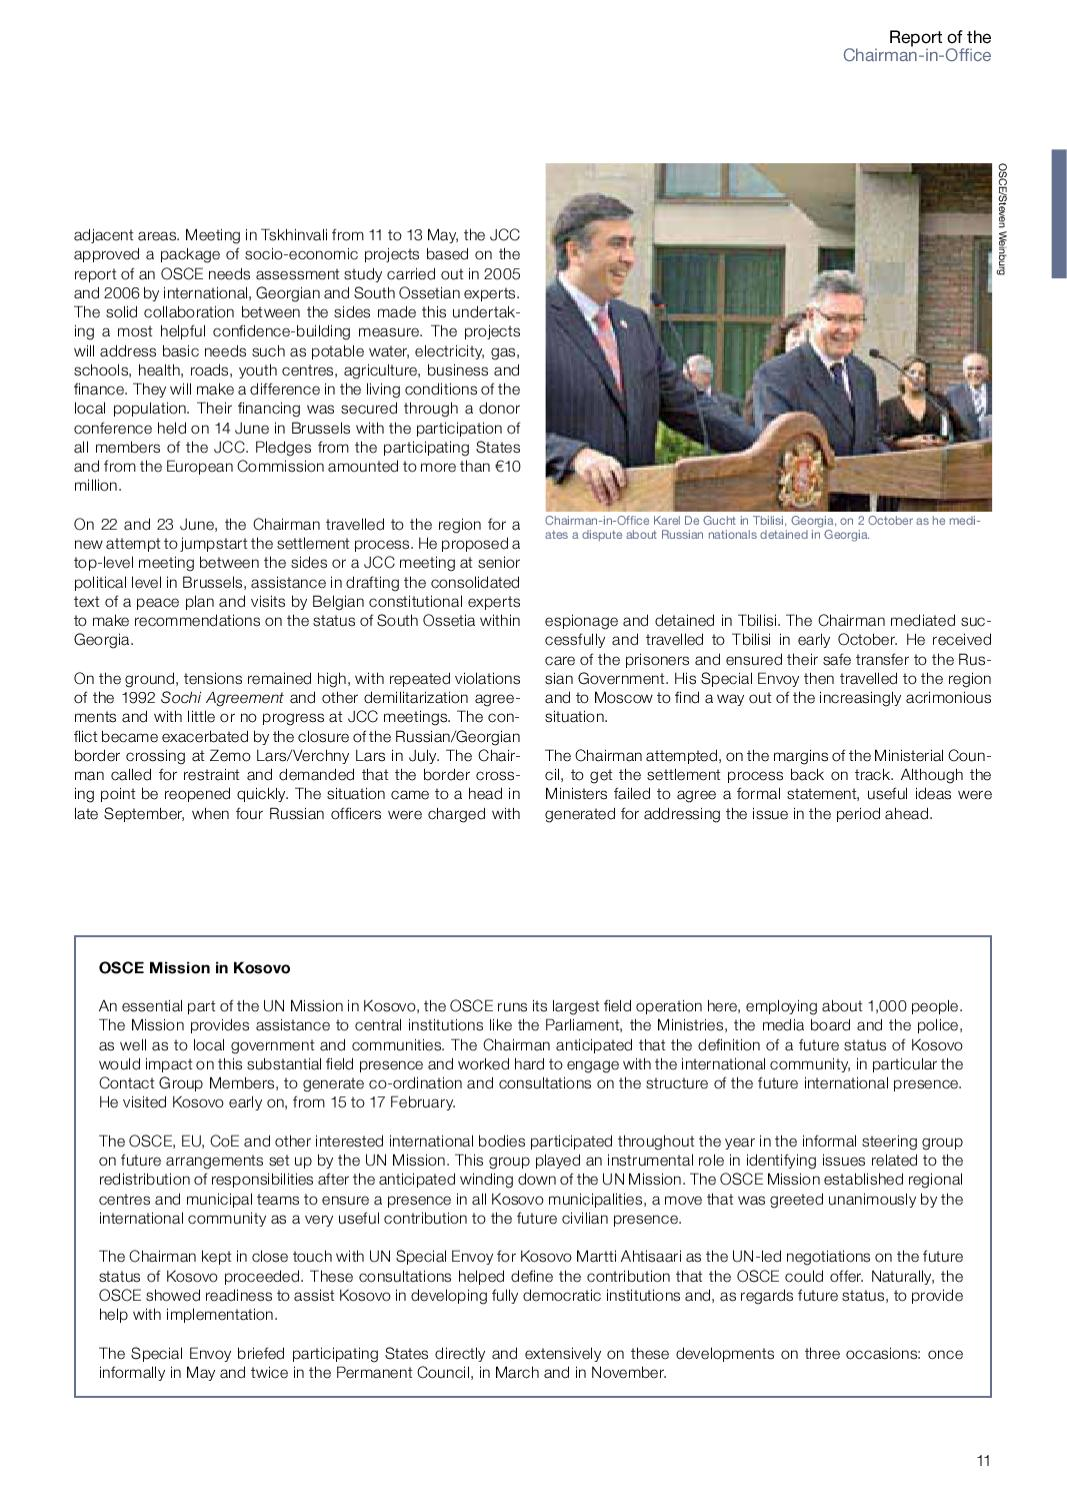 OSCE Annual Report 2006 by The Organization for Security and Co-operation  in Europe (OSCE) - issuu